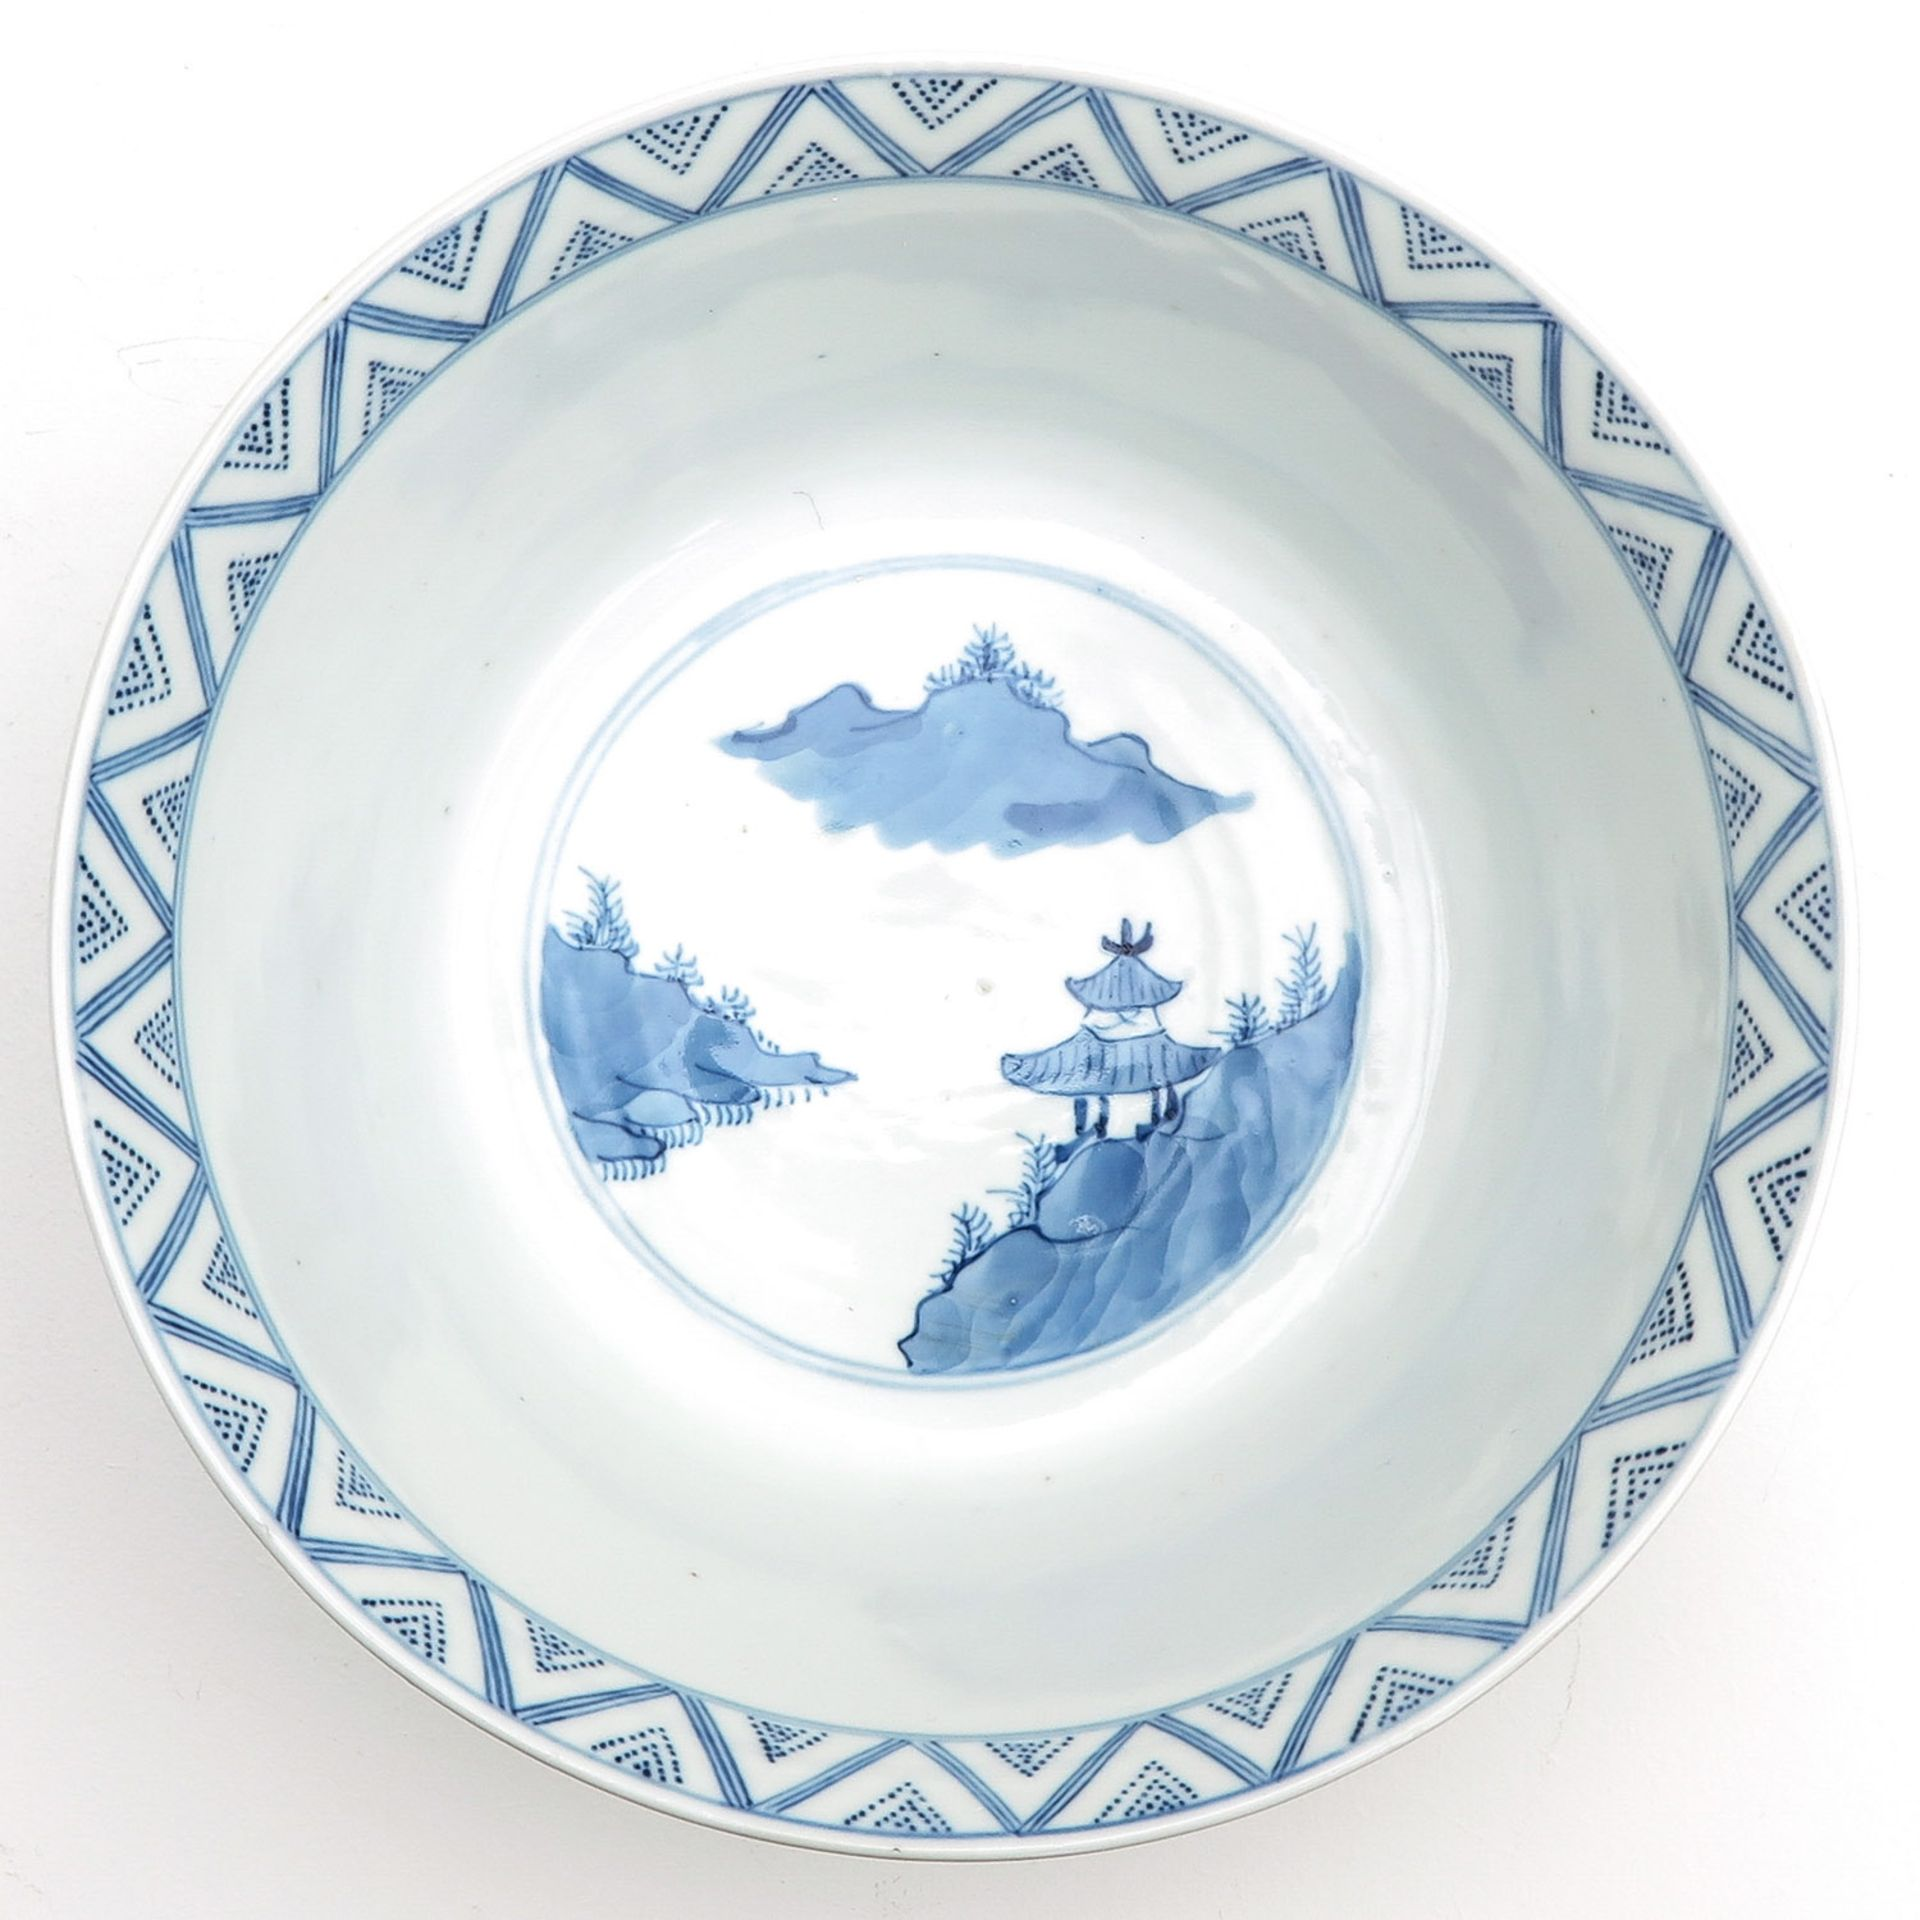 Los 7074 - A Blue and White Bowl